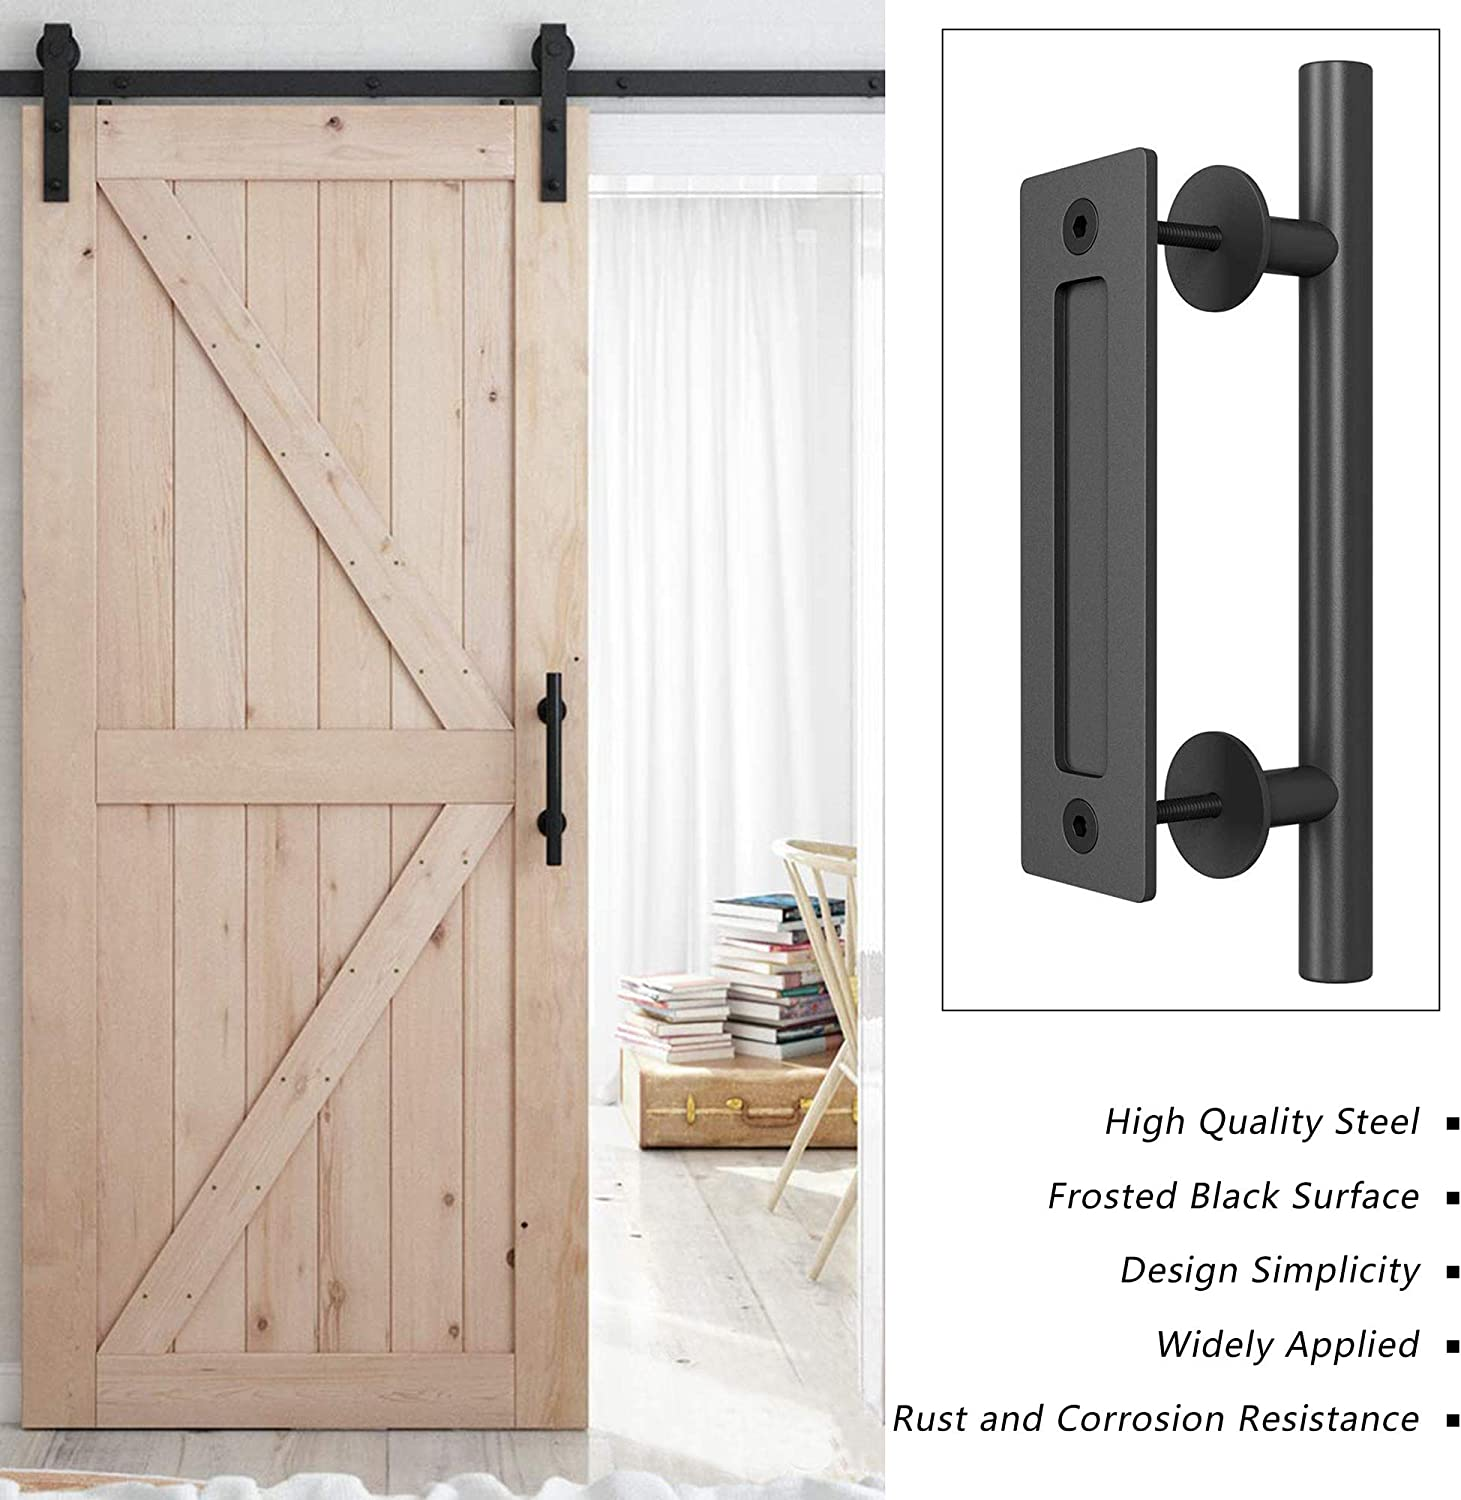 Sheds Barn Door Handle Set Black Powder Coated Finished Heavy Duty Version Round 12 Pull and Push Sliding Door Handle Large Rustic Two-Side Design for Gates Garages